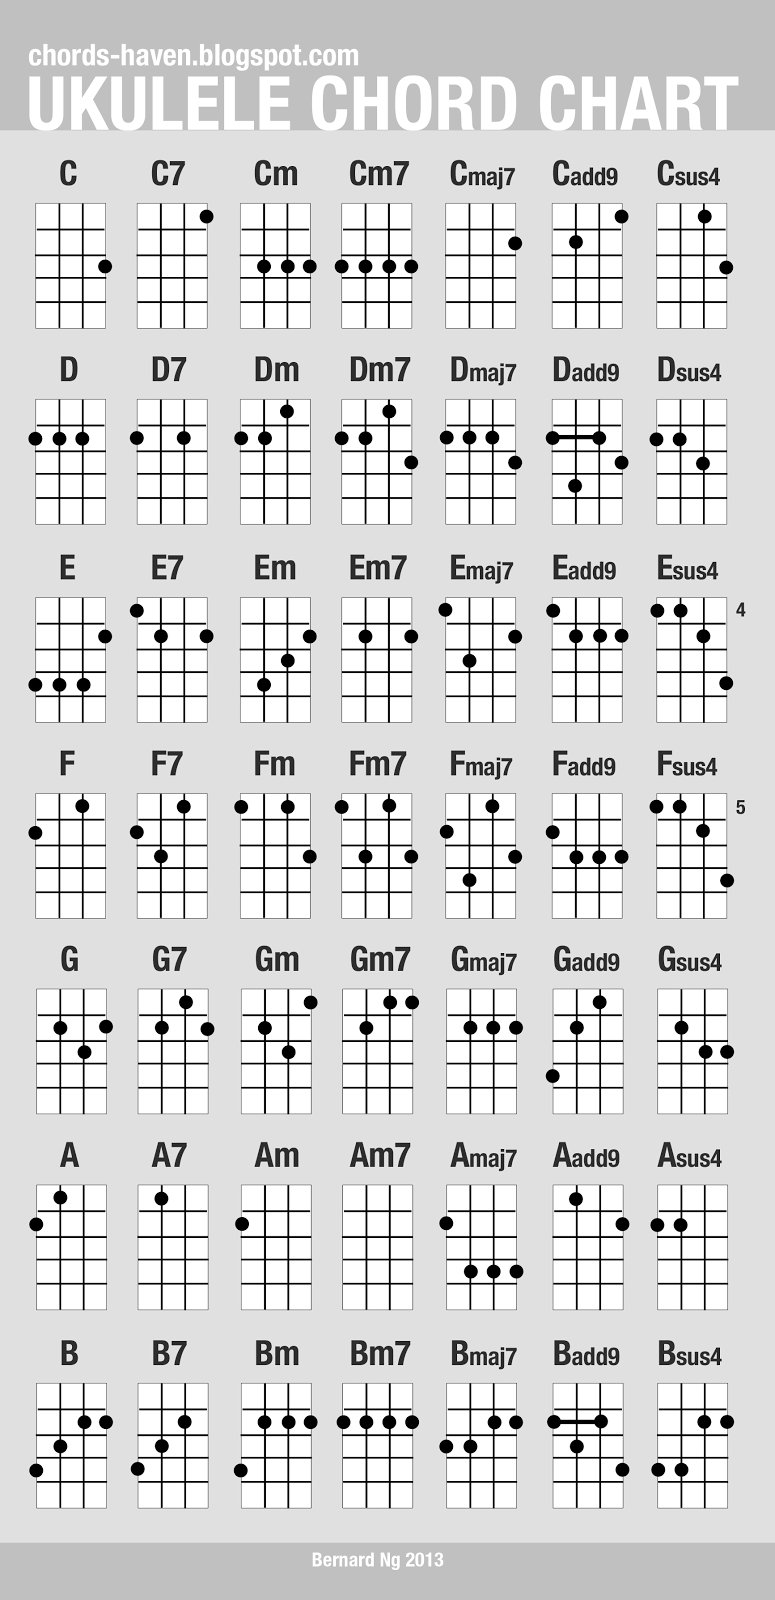 Chords haven home to your favourite chords music lyrics 0 comments hexwebz Image collections